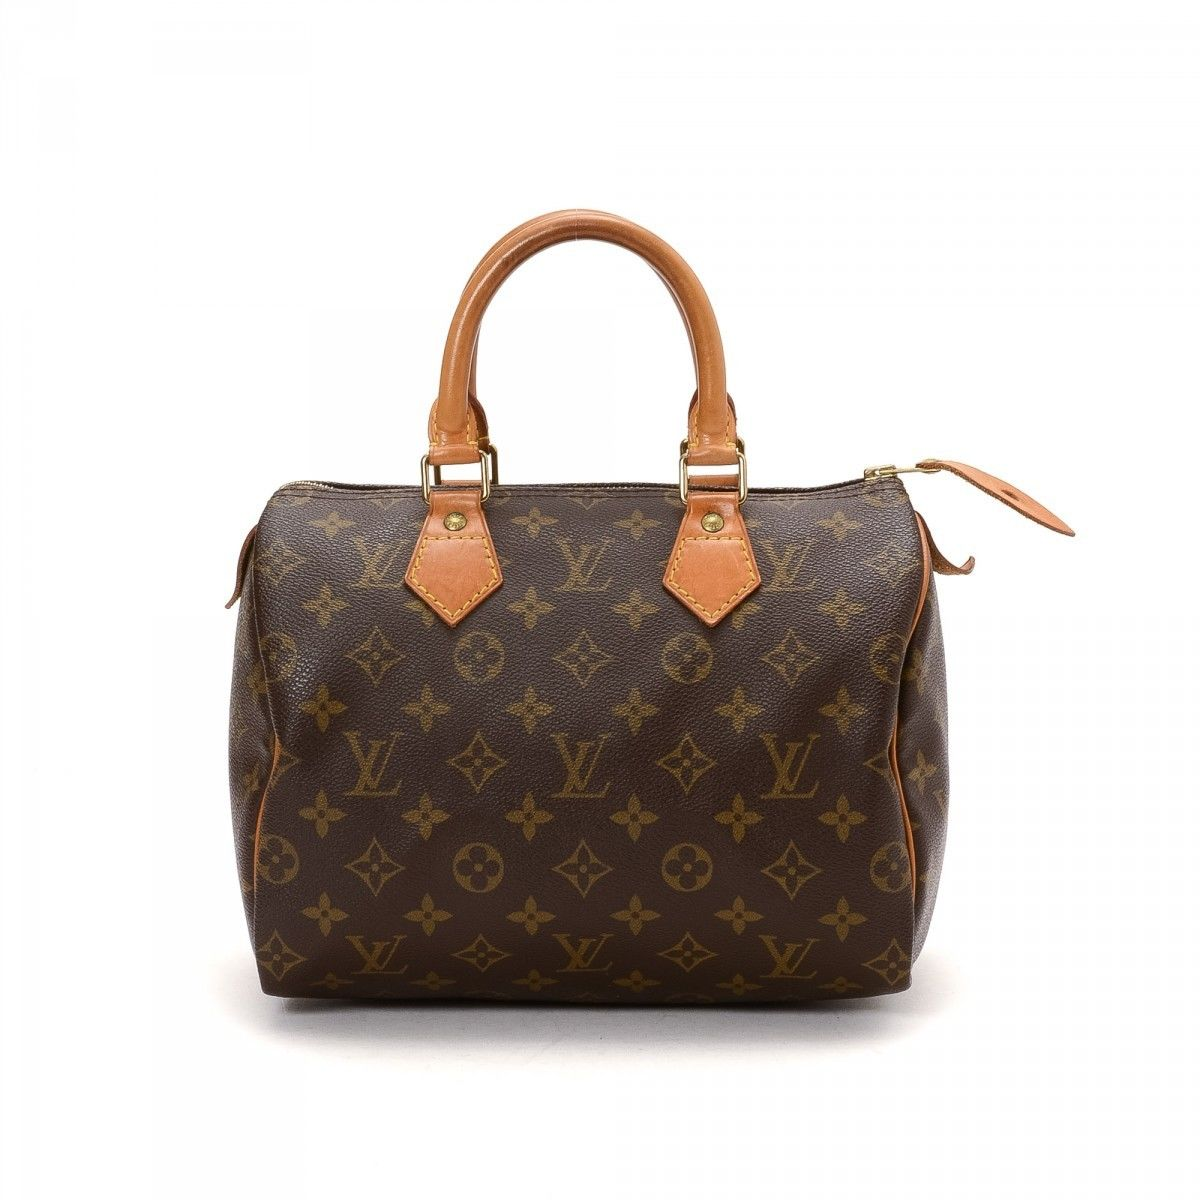 Gucci Travel Business Bags